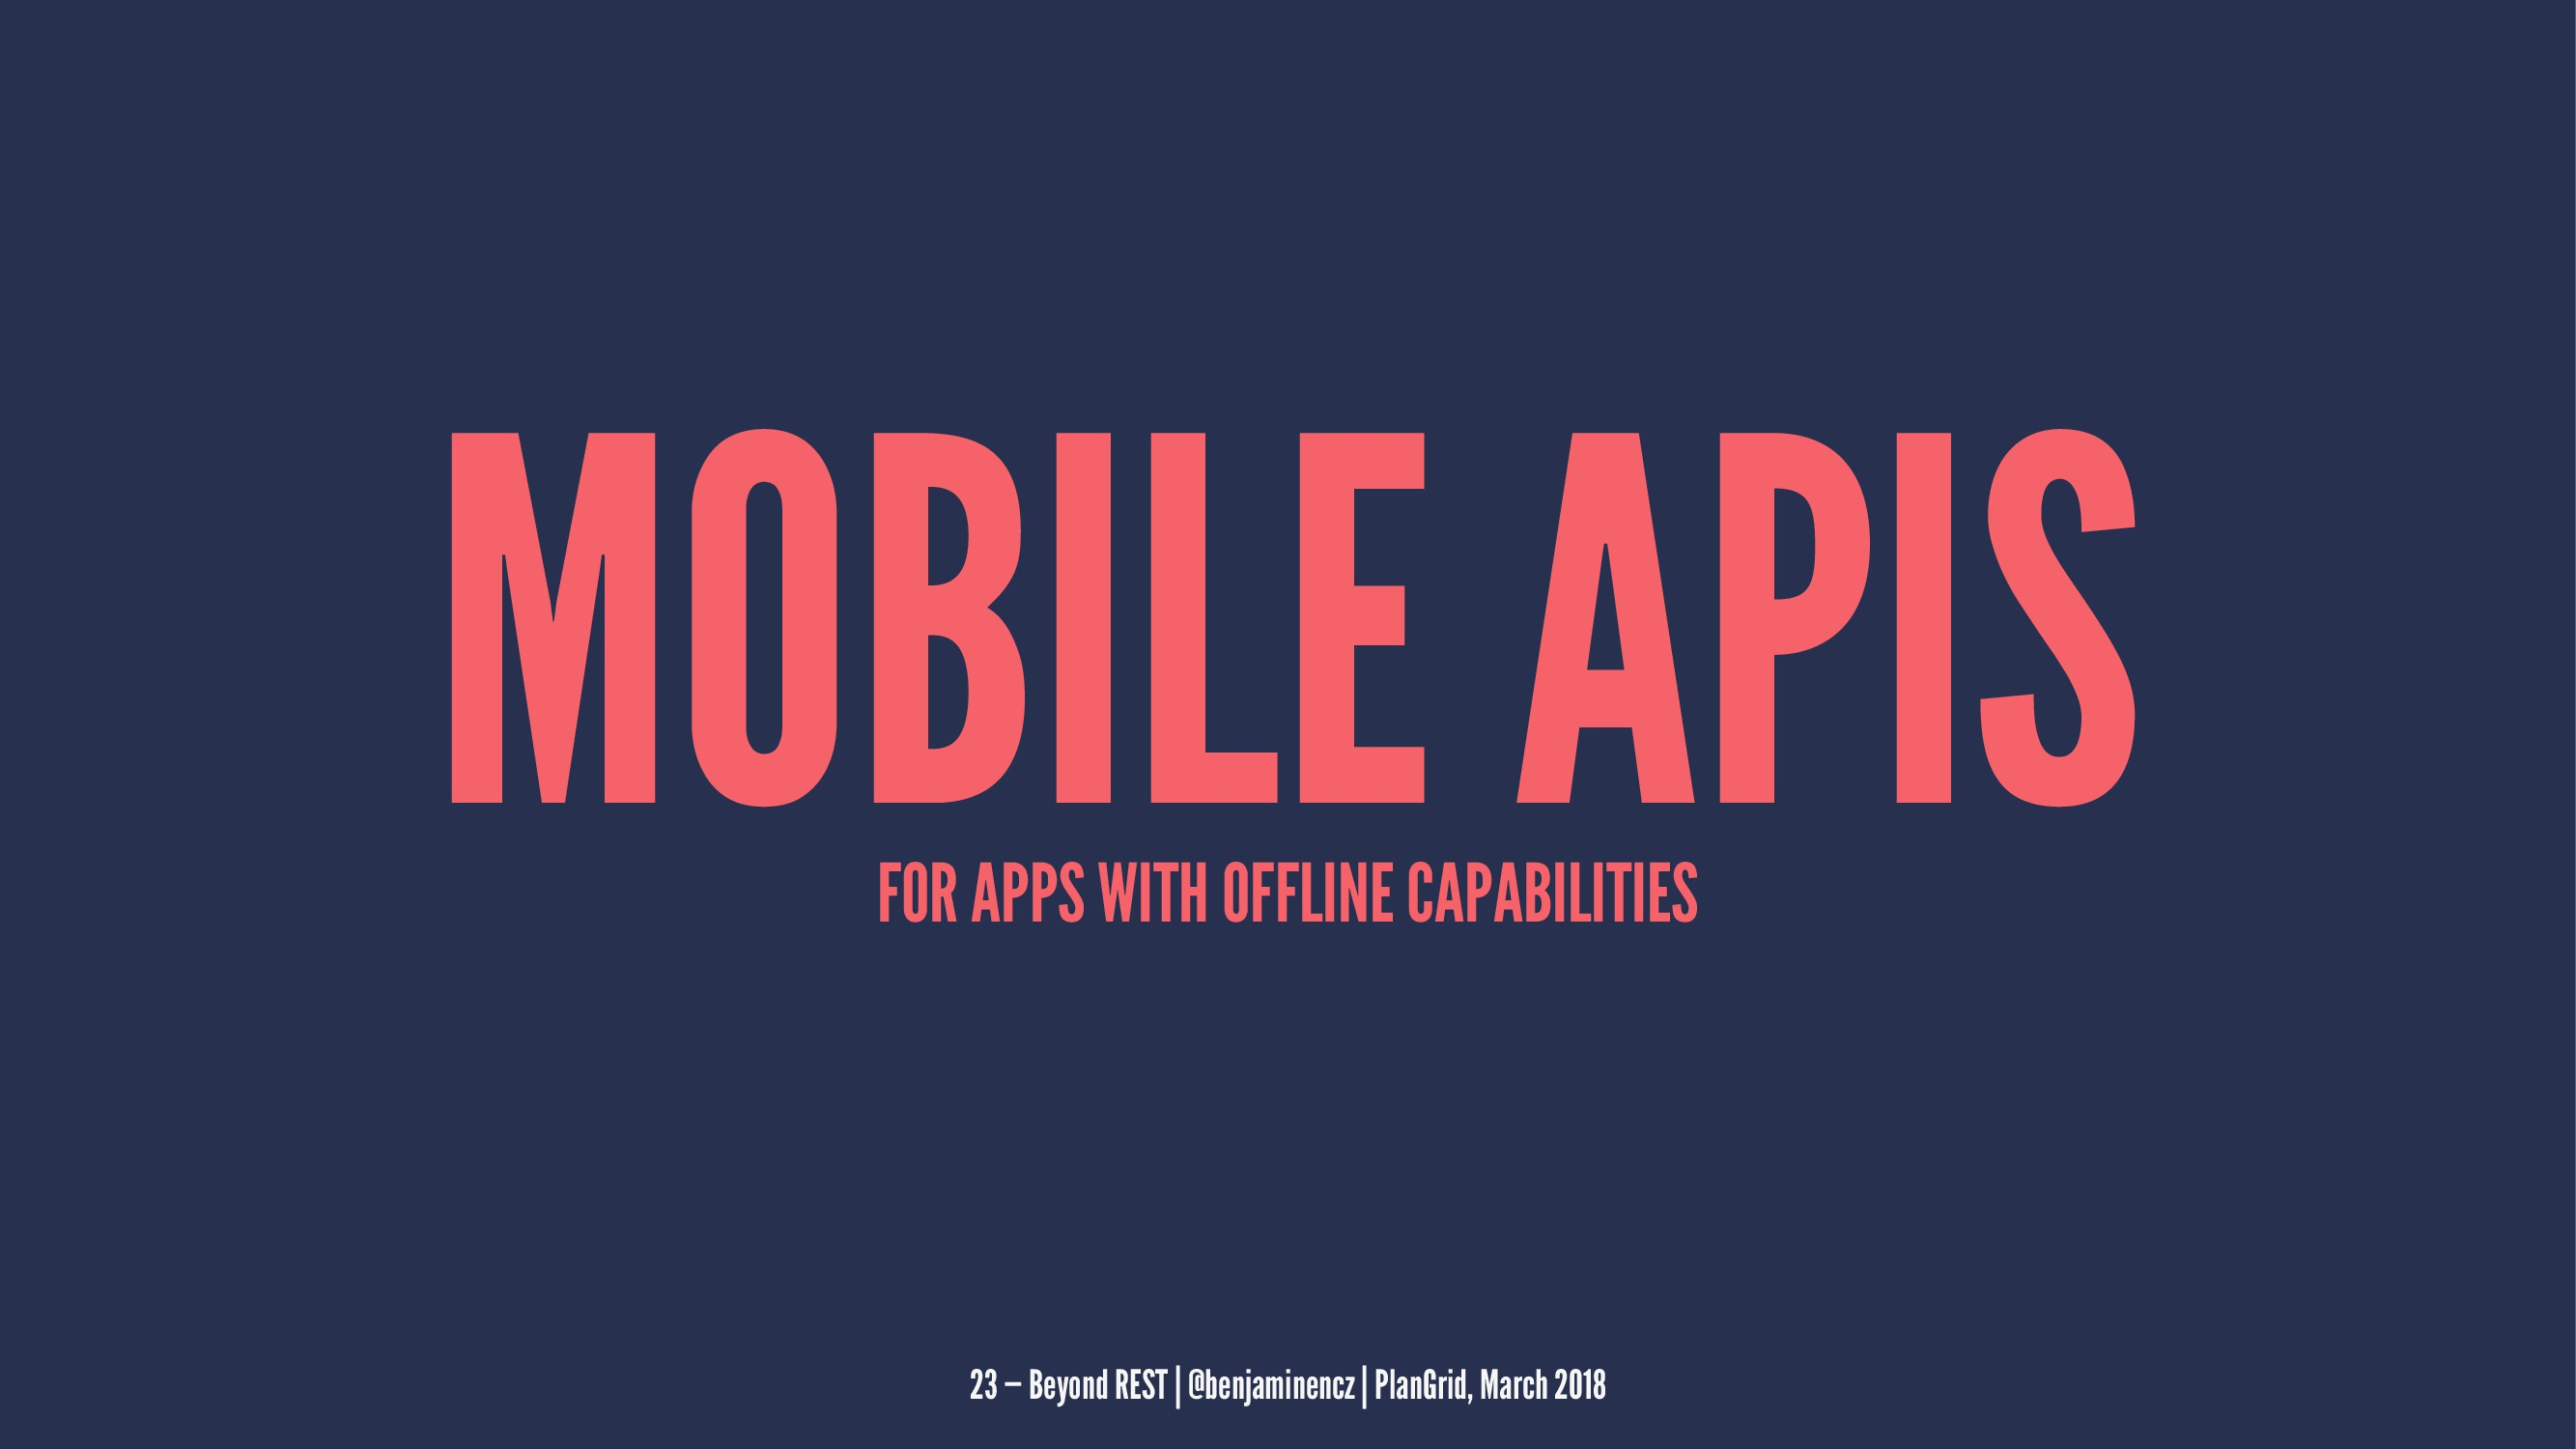 MOBILE APIS FOR APPS WITH OFFLINE CAPABILITIES ...